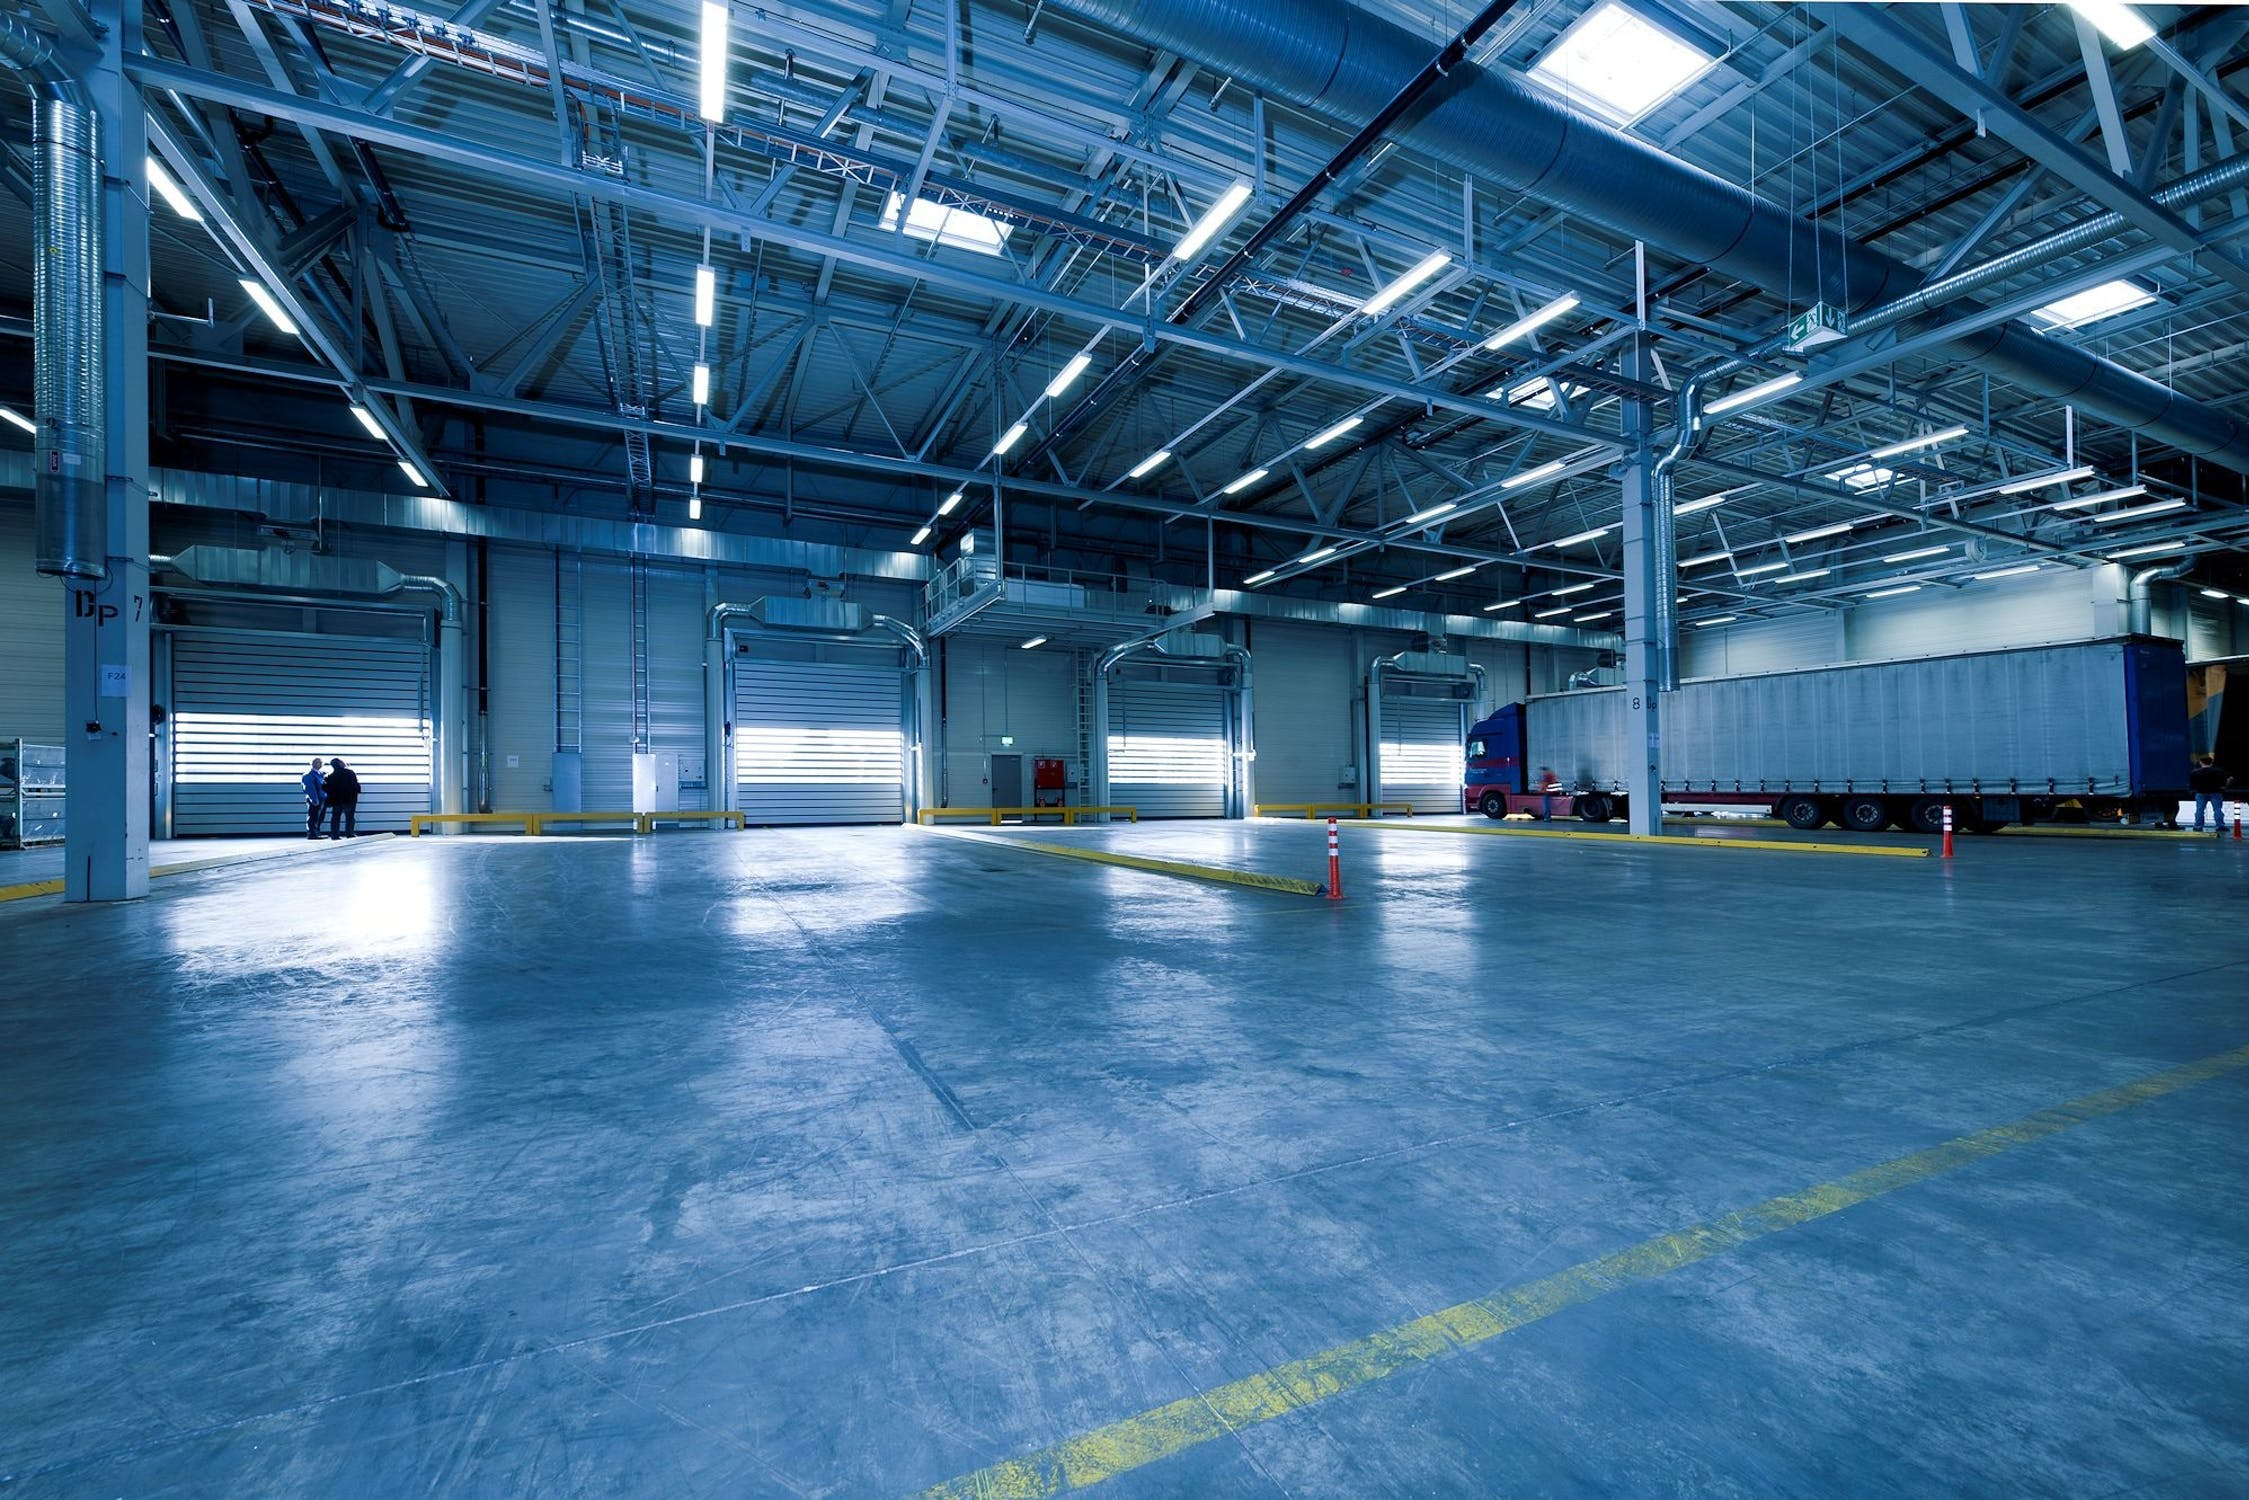 Preventing Warehousing Injuries / Safety in the Warehousing Industry